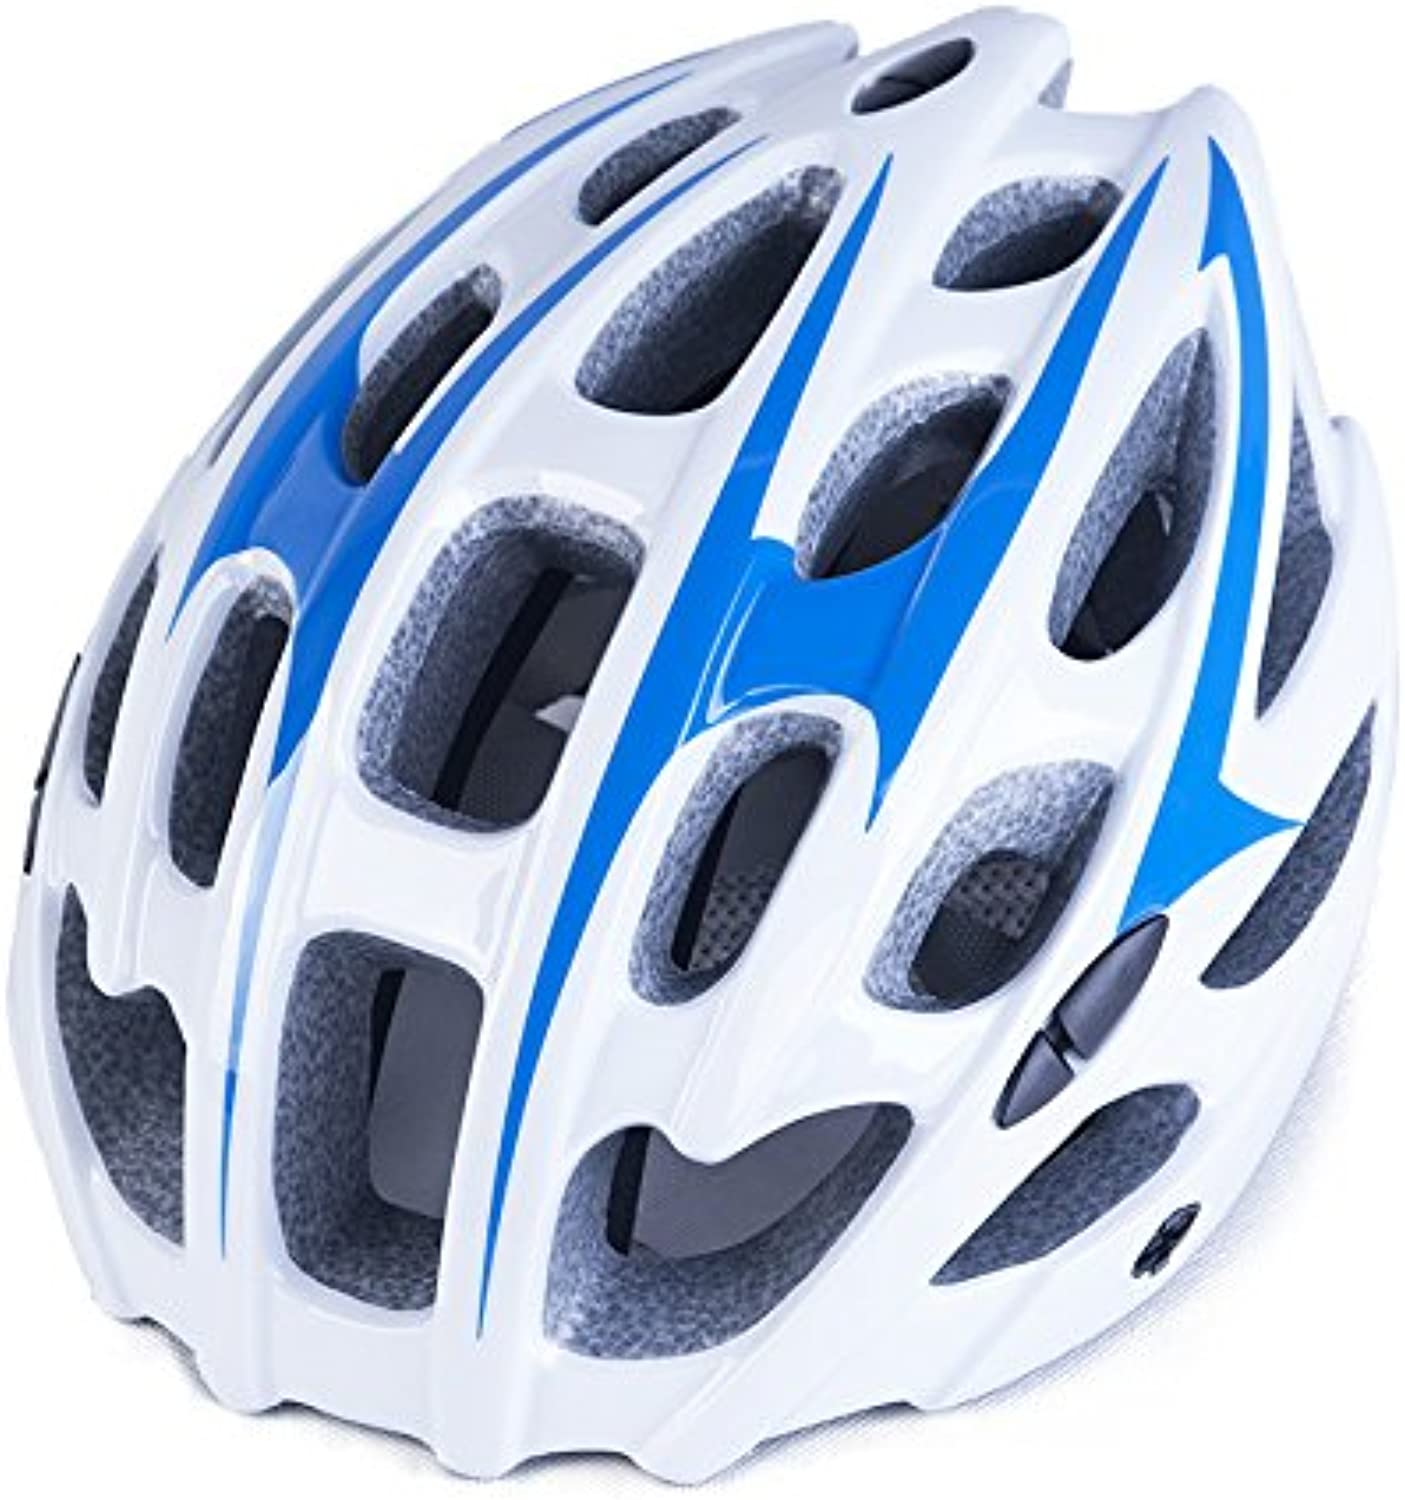 Bicycle Helmet, Cycling Helmet, Ventilated Low Wind Resistance Head Circumference Adjustable Head Circumference Size, Pgoldus (Men and Women),blueeewhite,57to62cm